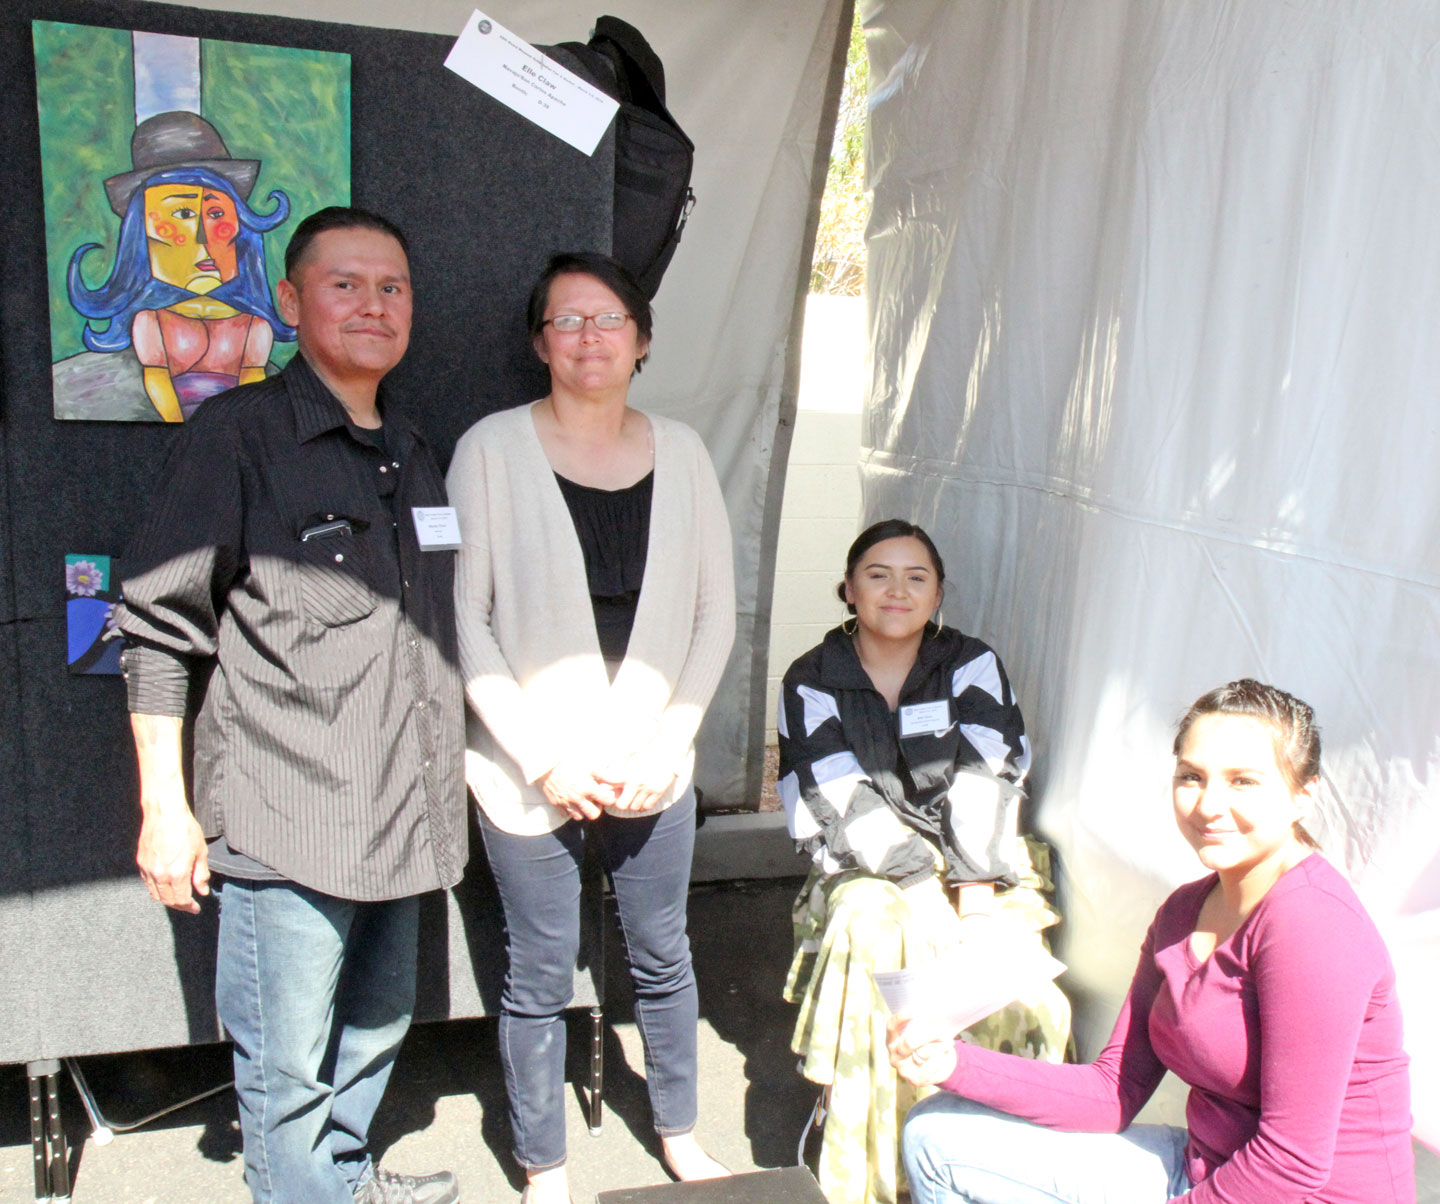 MONTY CLAW, KAREEN CLAW, and his daughters at their booth. Monty Claw is a jeweler, a painter, a fan maker, and above all an artist. This year he brought his jewelry, while his daughter Elle took over the two-dimensional art with her own paintings.